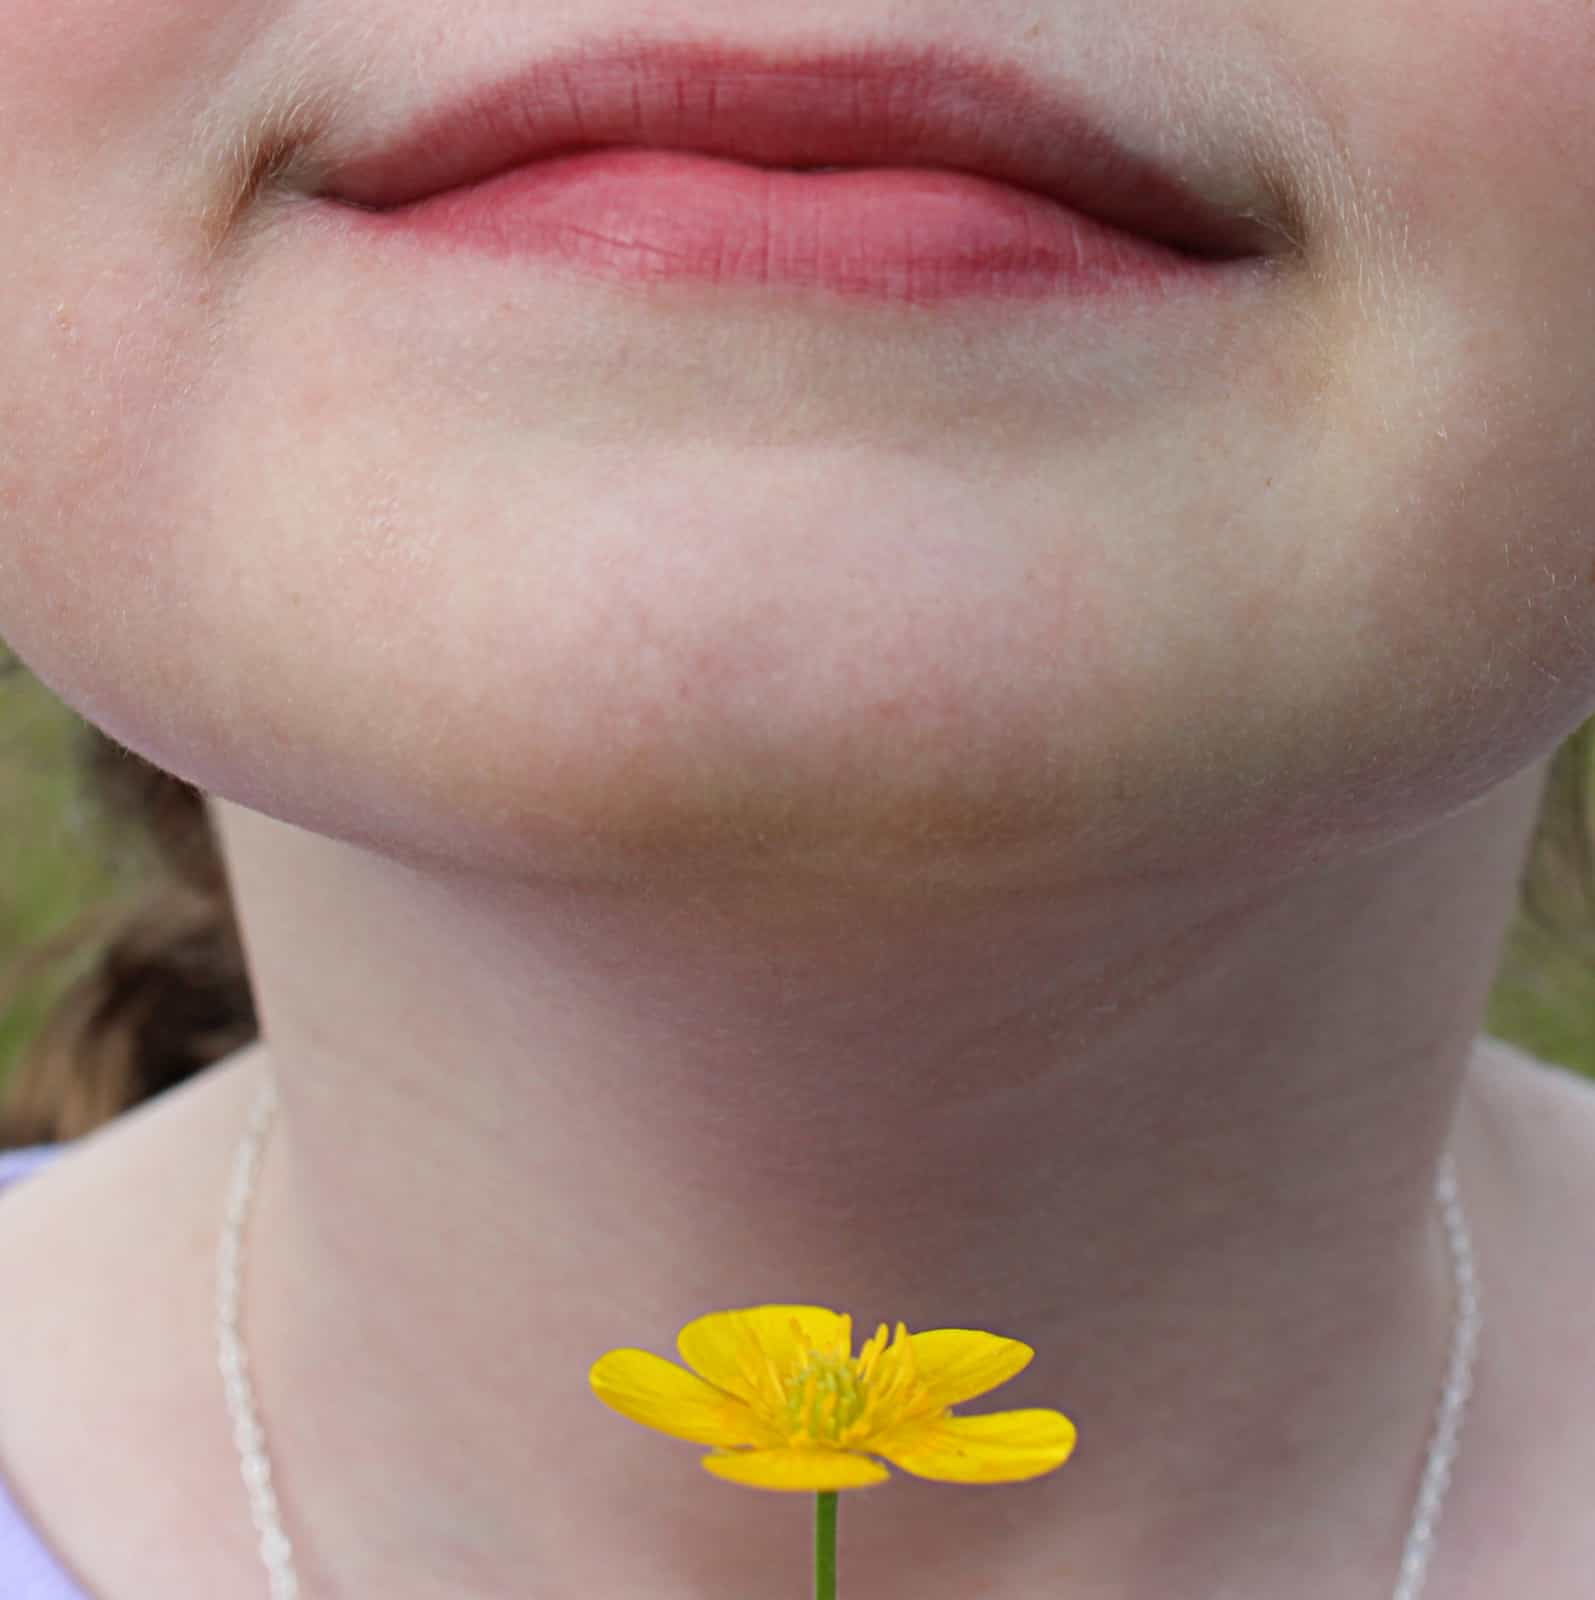 Holding a yellow buttercup under the chin